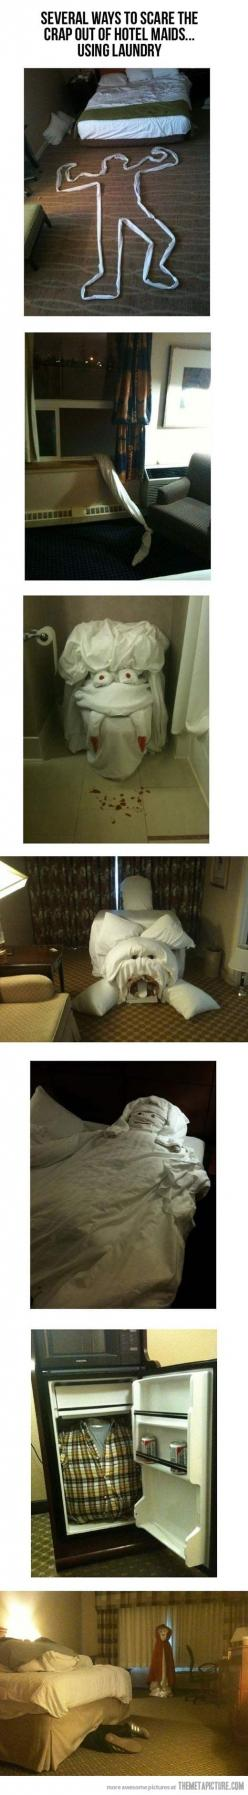 Before leaving your hotel room…: Bucket List, Giggle, Funny Stuff, Scare Hotel, Hotels